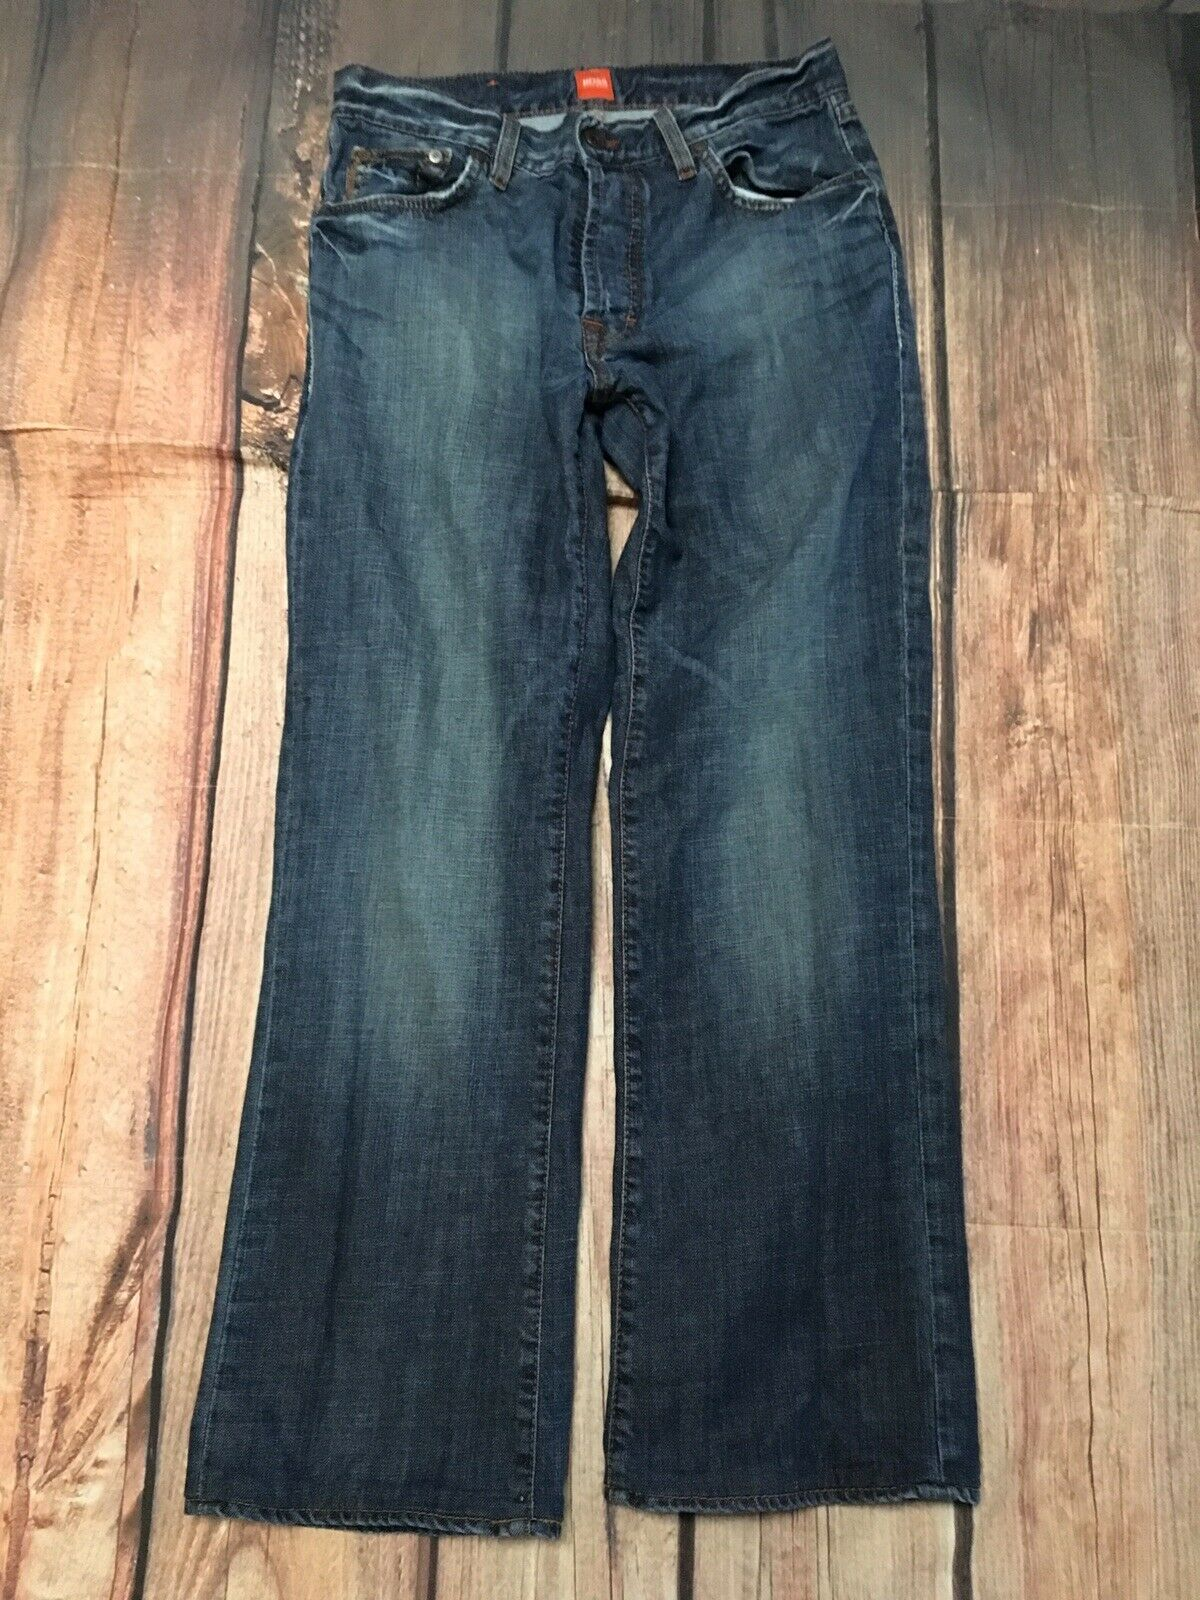 Mens HUGO BOSS HB31 Original Medium wash bluee Jeans W 32 x  L 34 With Button Fly